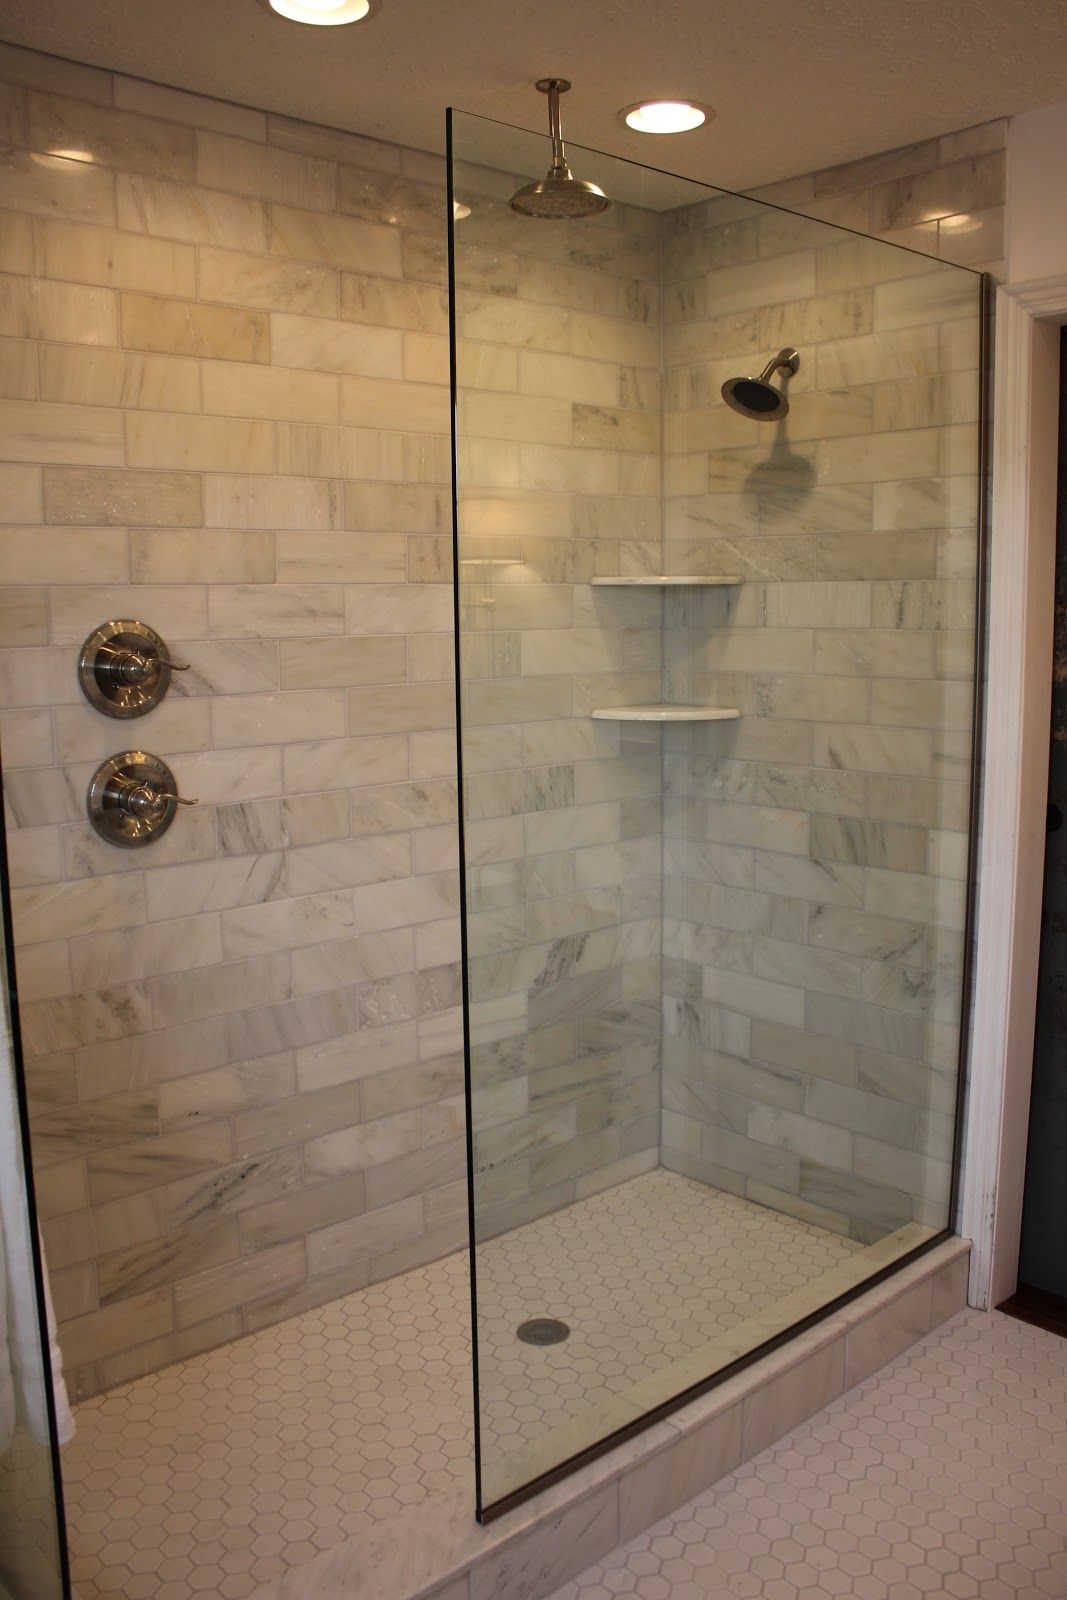 Cool glass doorless shower design decor with brick soft for Glass bricks designs